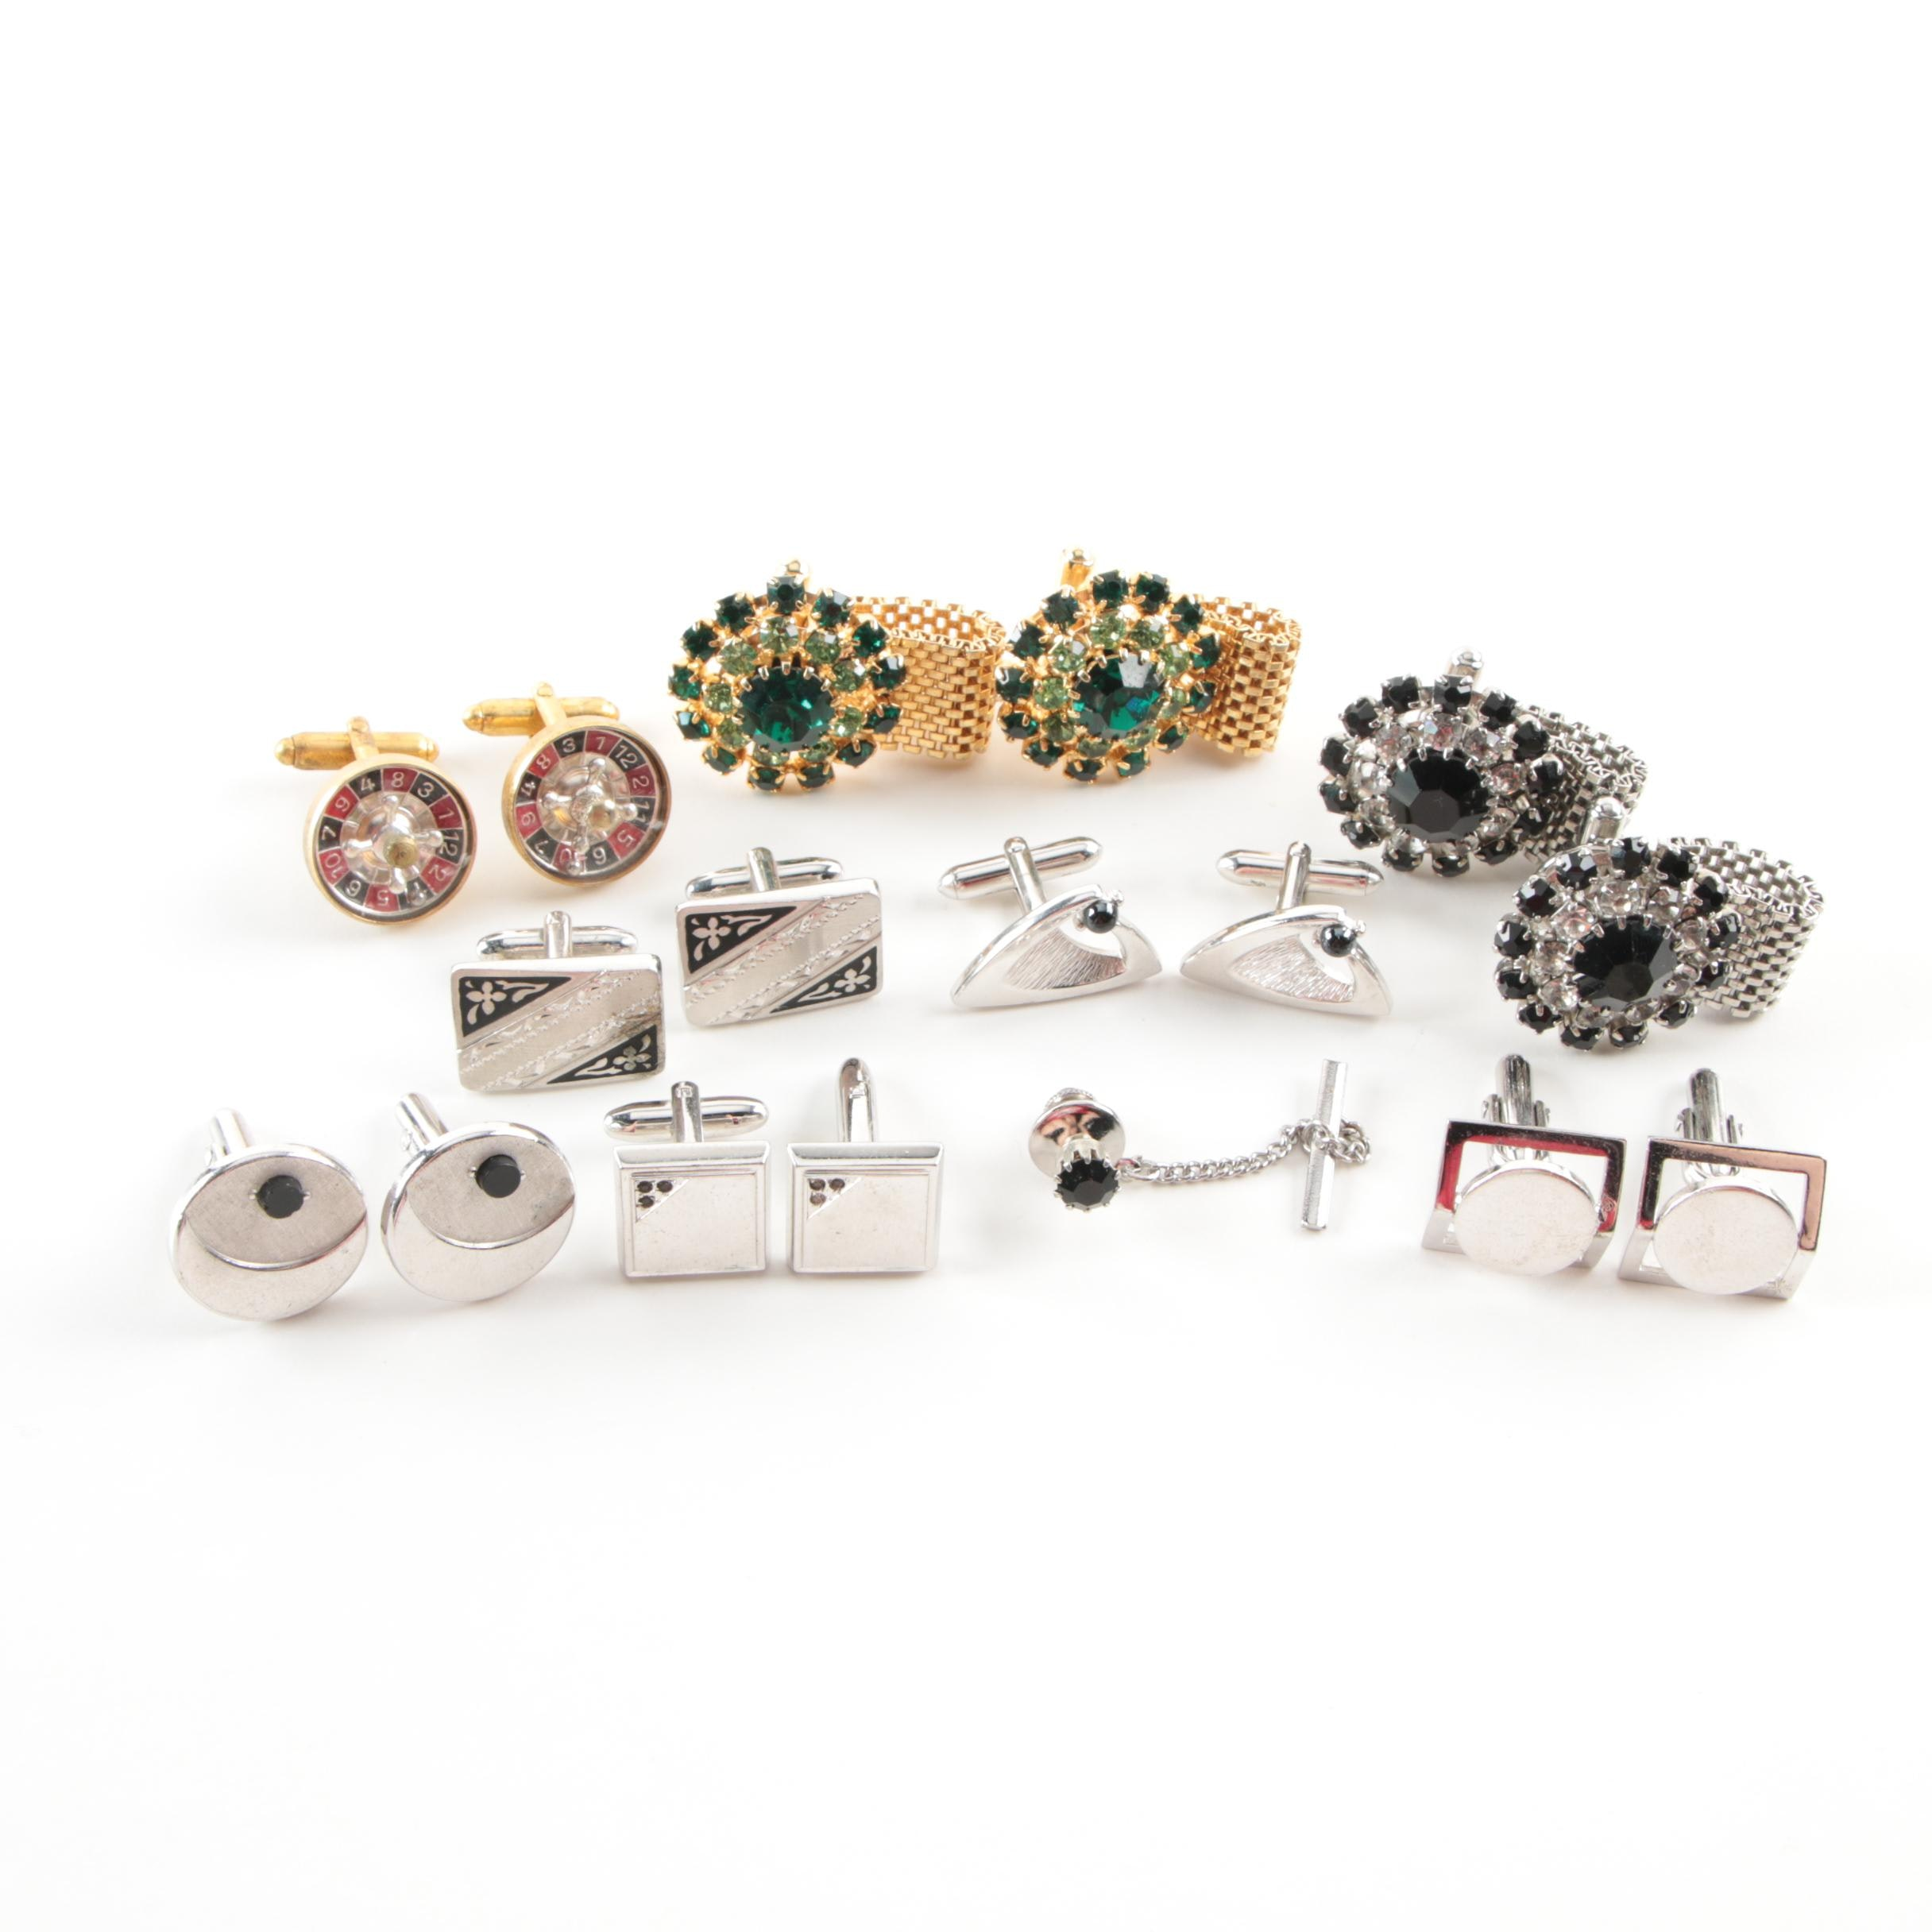 Cufflinks and Tie Tack Assortment Including Black Onyx and Enamel